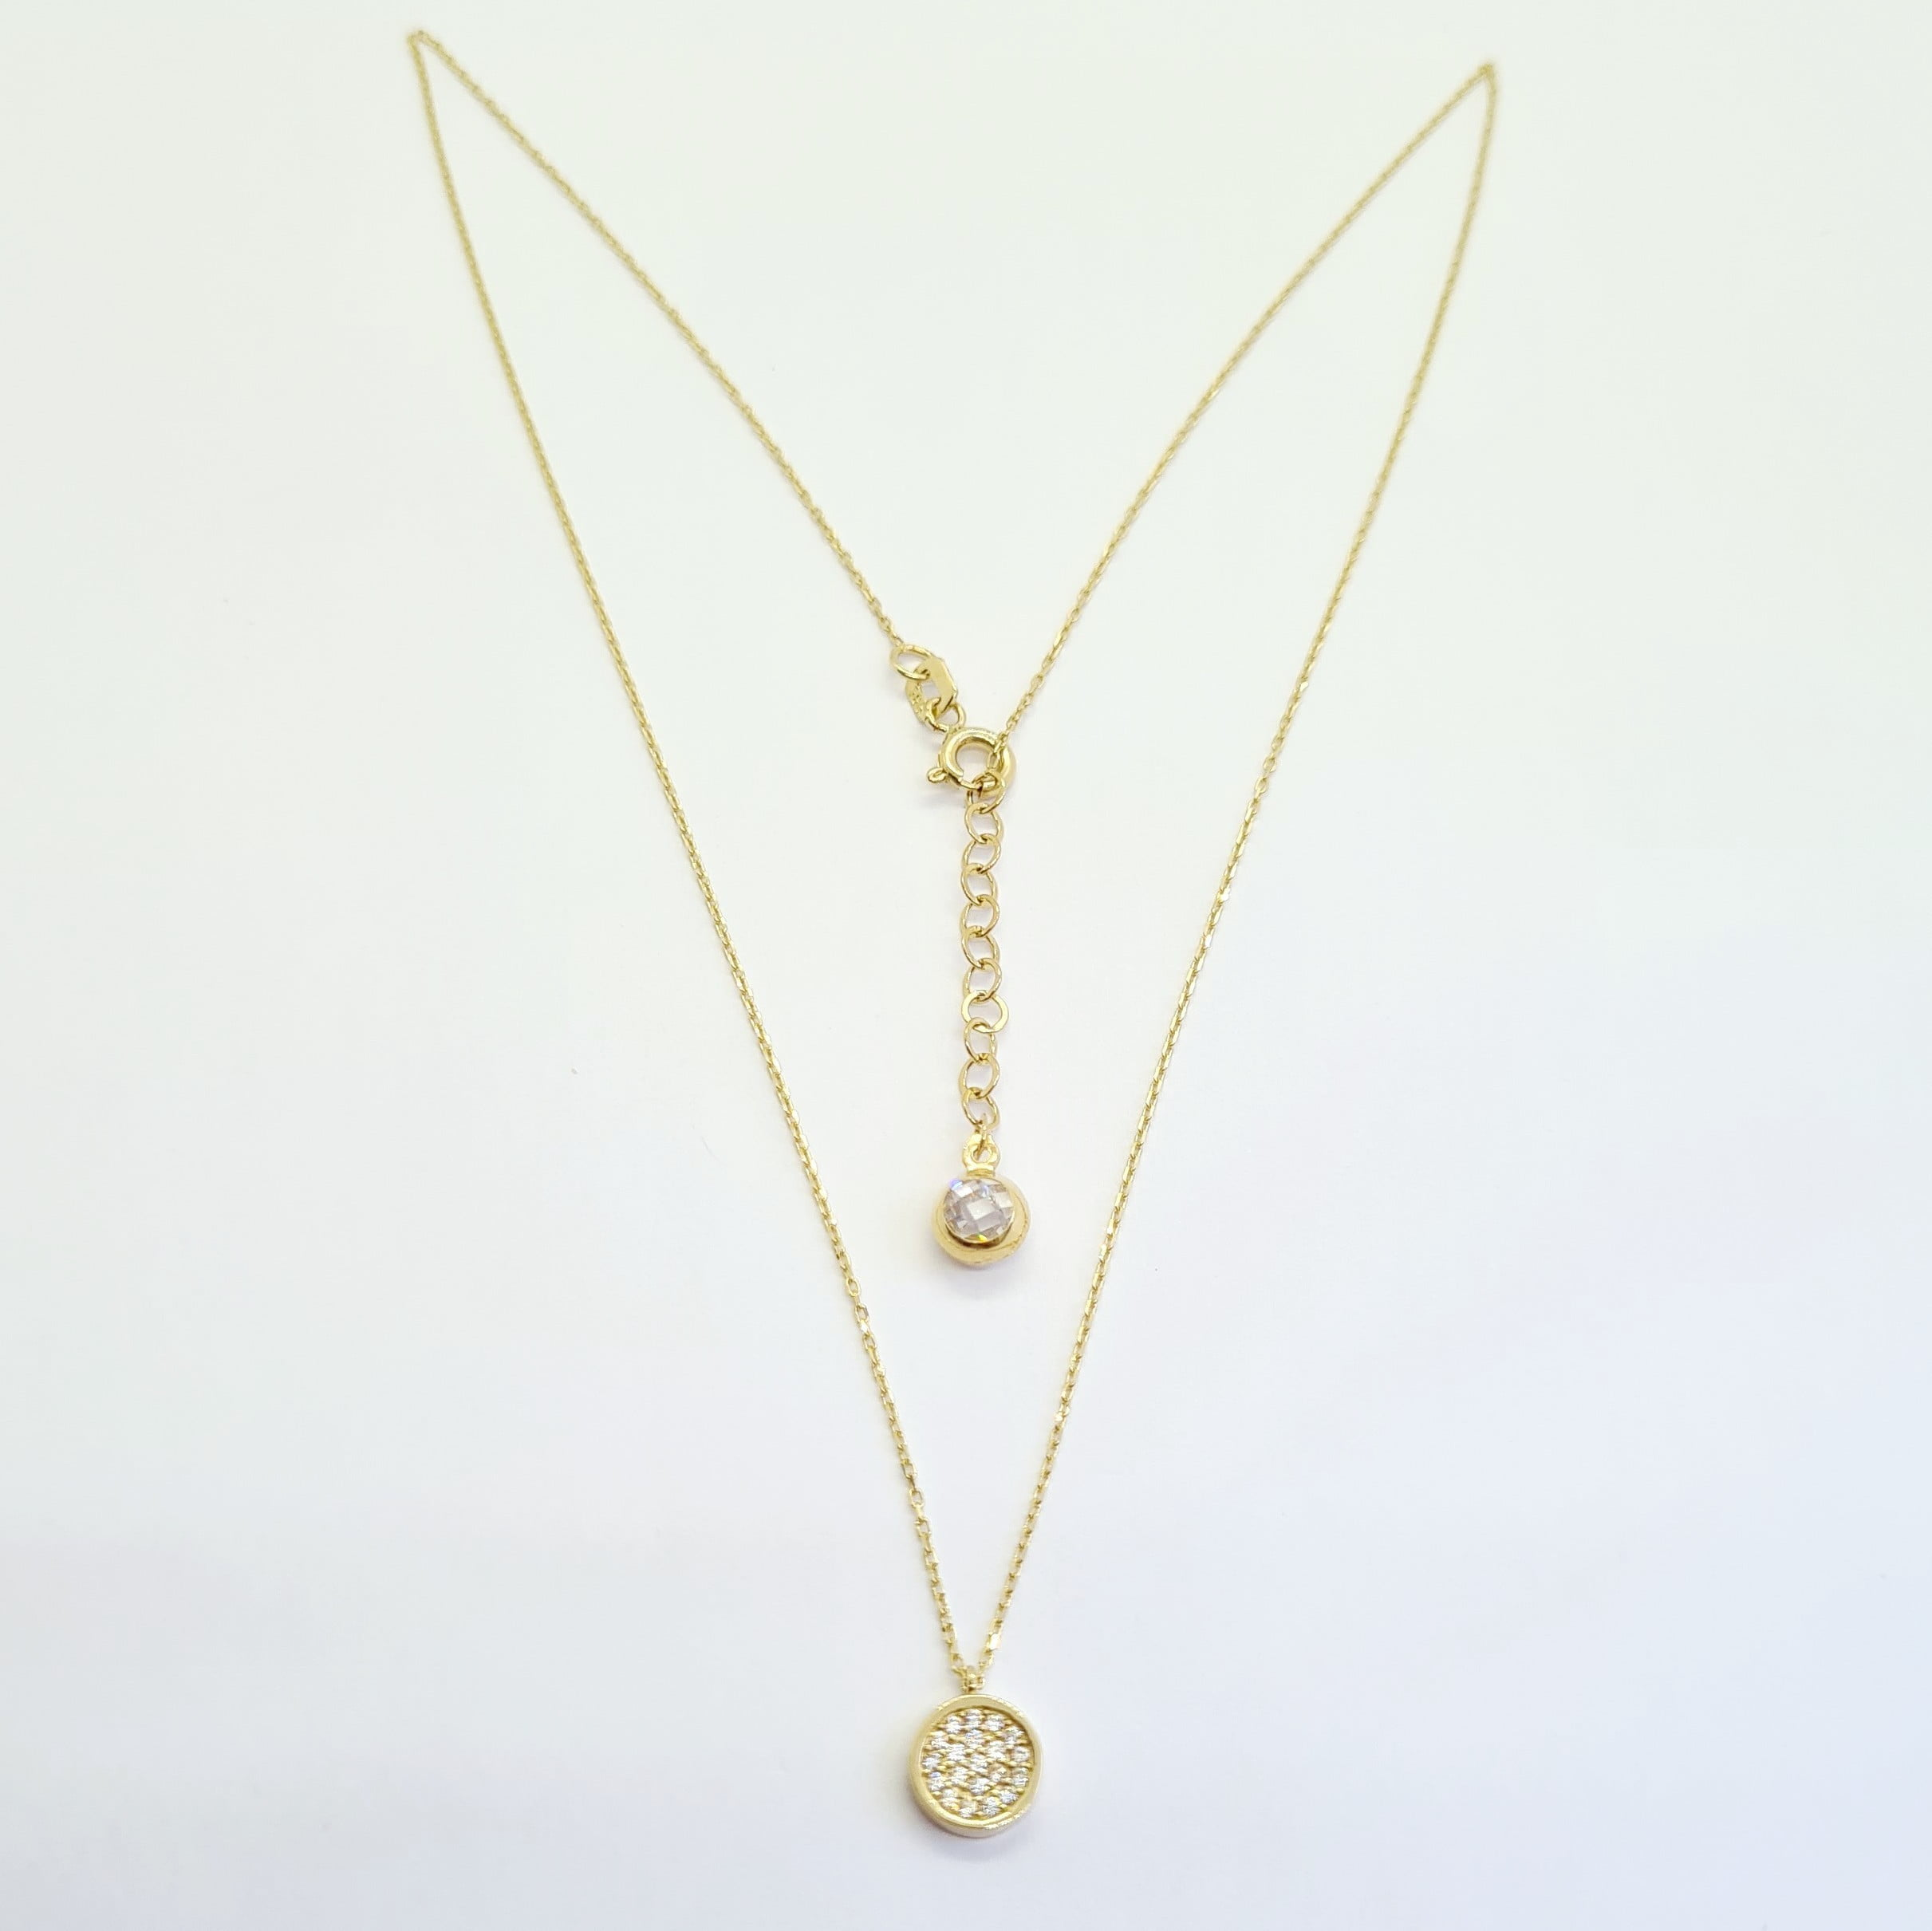 14K Real Solid Gold CZ Pave Round Necklace for Women , CZ Pave Pendant , Handmade Jewelry , Circular Necklace Gold, Round Cubic Zirconia Necklace